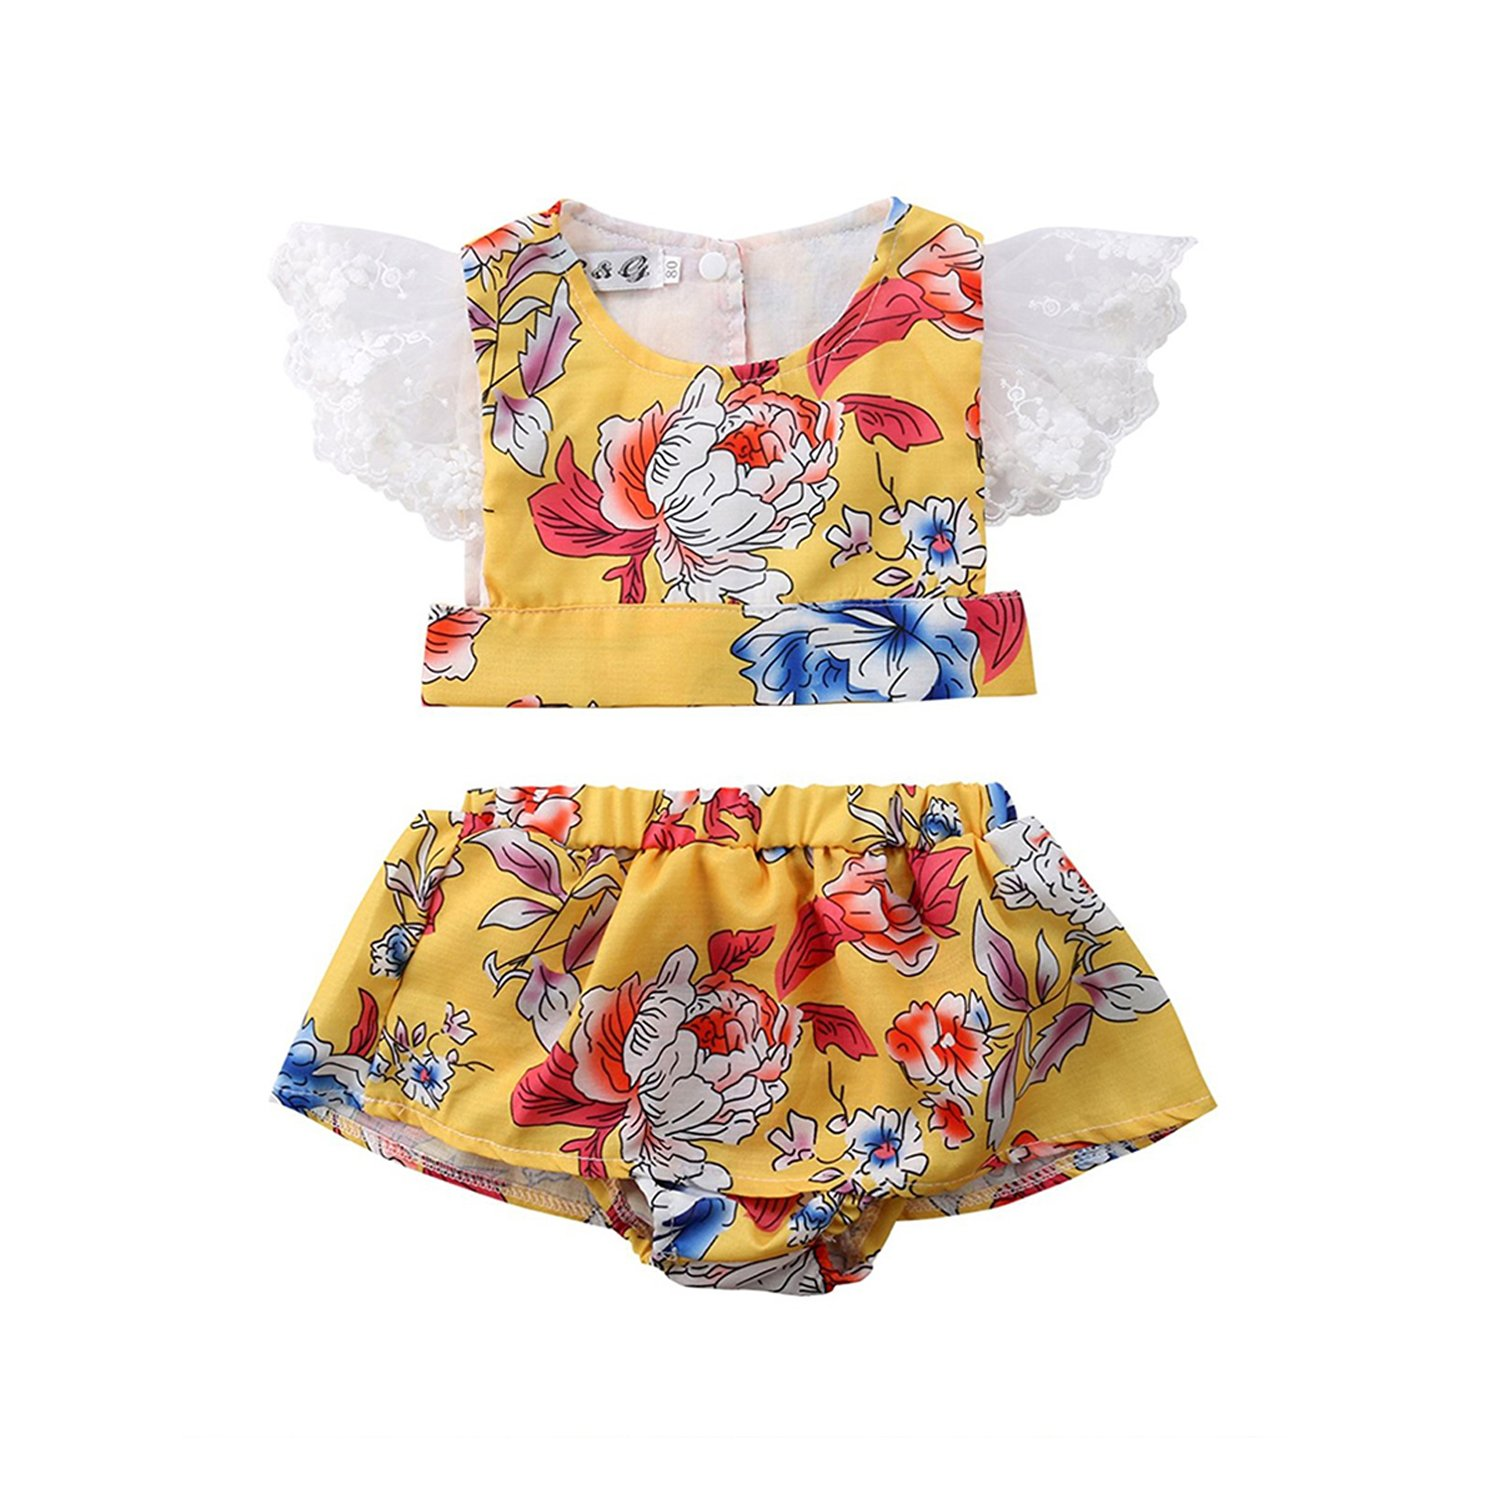 GSHOOTS Baby Girls' 2Pcs Clothes Set Floral Ruffle Top + Bowknot Shorts 40487